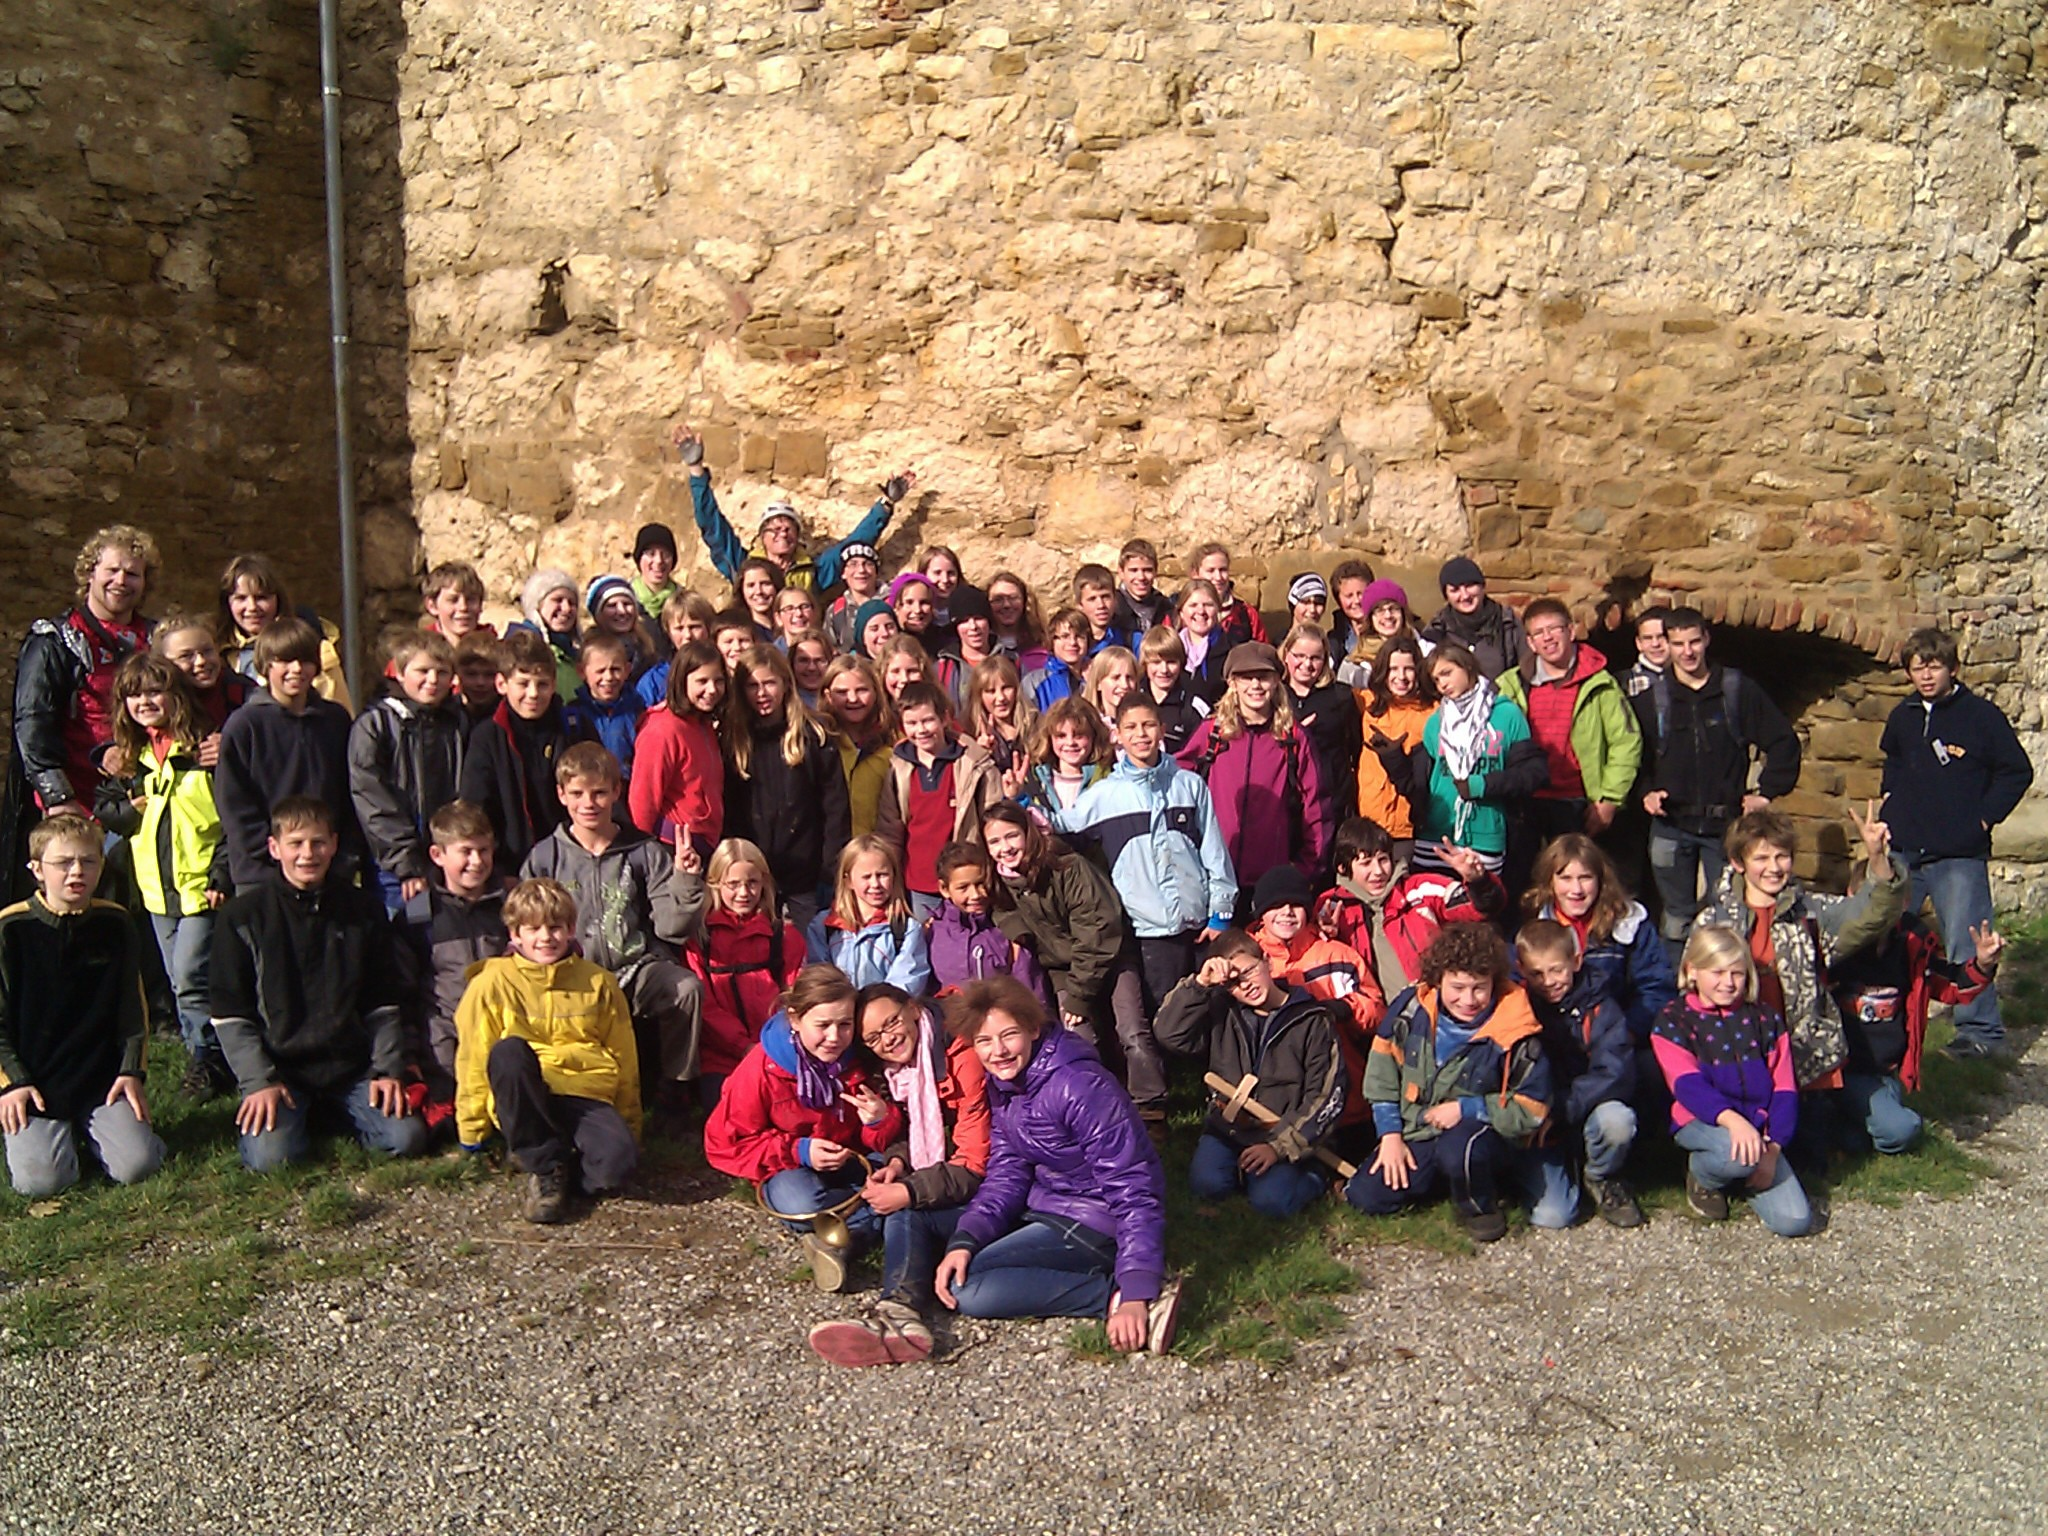 The Jungschar Aadorf Camp group from Weingarten visiting the Landskron Castle on the French-Swiss border.